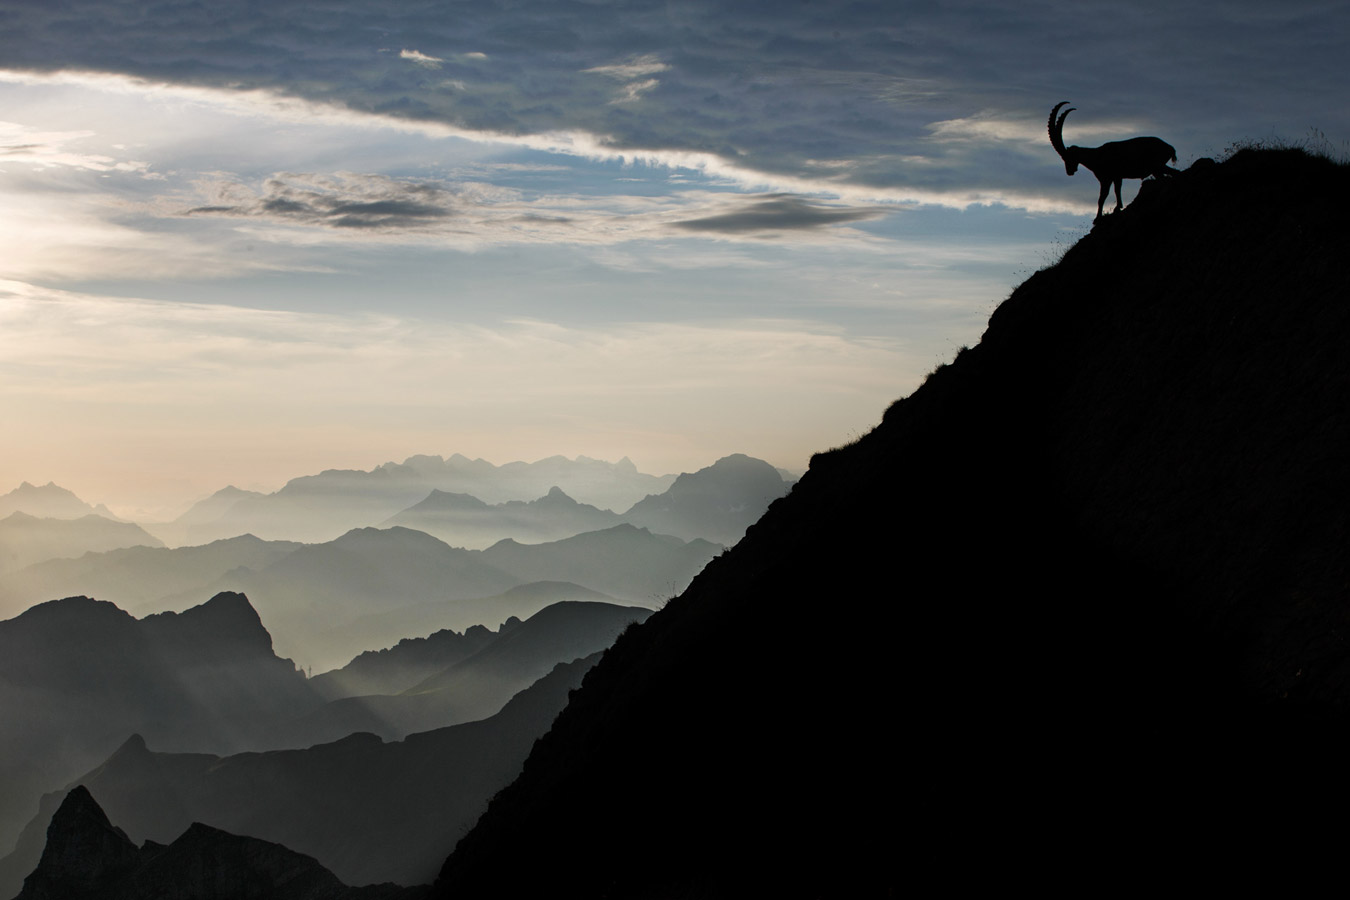 On the Top, © Radomir Jakubowski, Nature, CEWE Photo Award